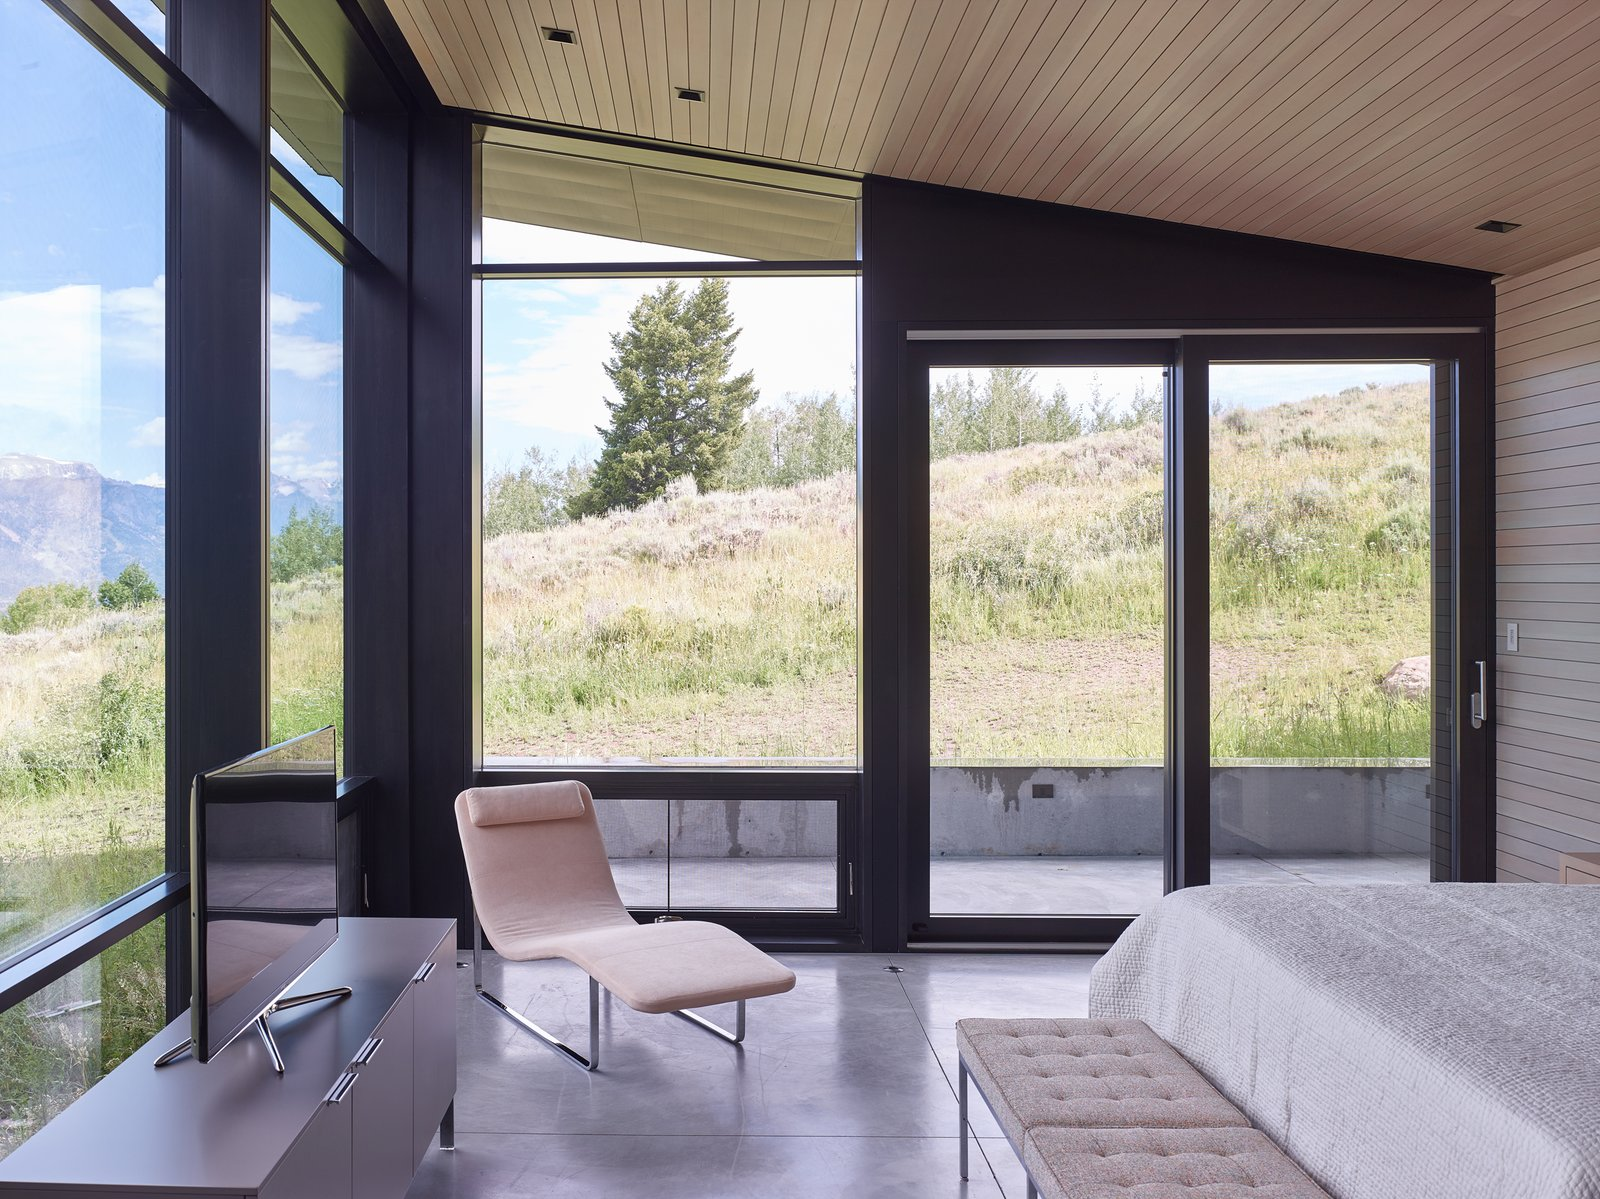 The master bedroom shares in the floor-to-ceiling views, allowing symbiosis with the meadow outside. Tagged: Bedroom, Bed, Chair, Concrete Floor, and Bench.  Wyoming Residence by Abramson Teiger Architects